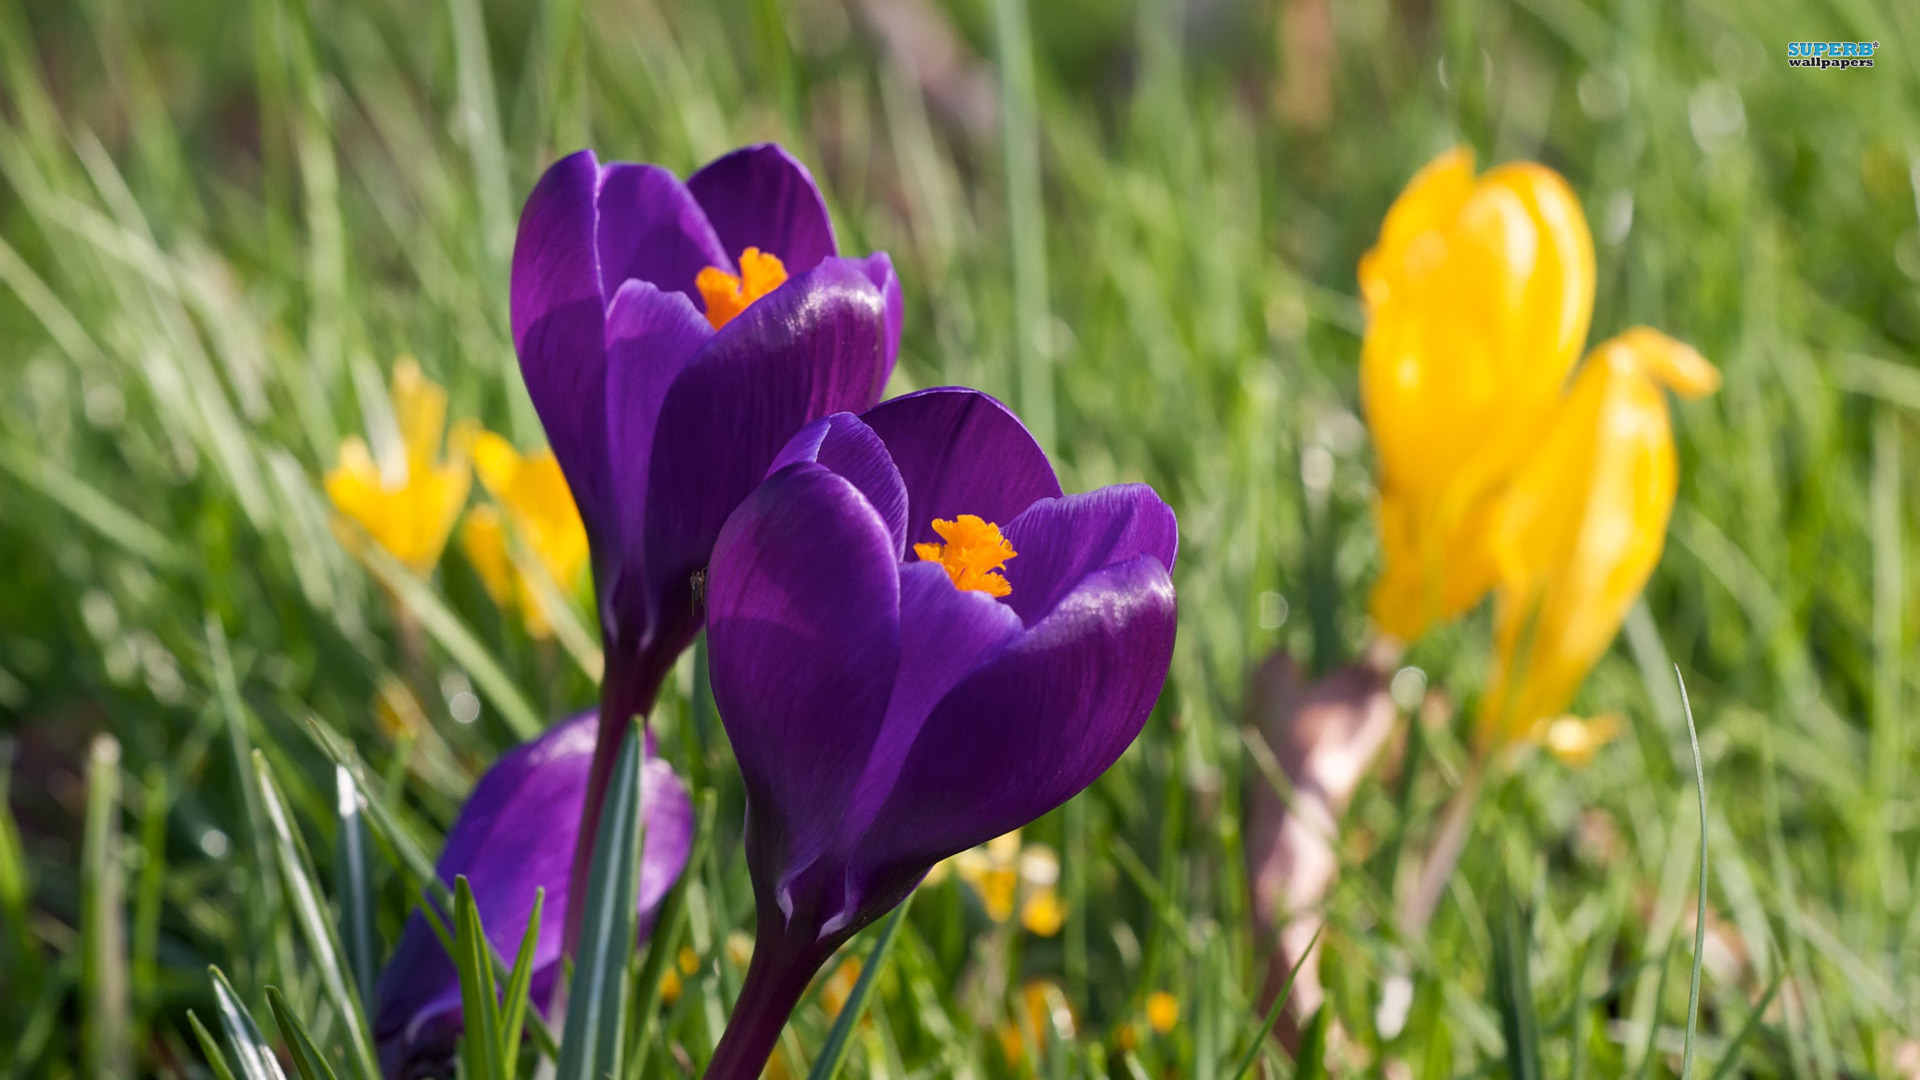 Purple Crocus wallpaper 1920x1080